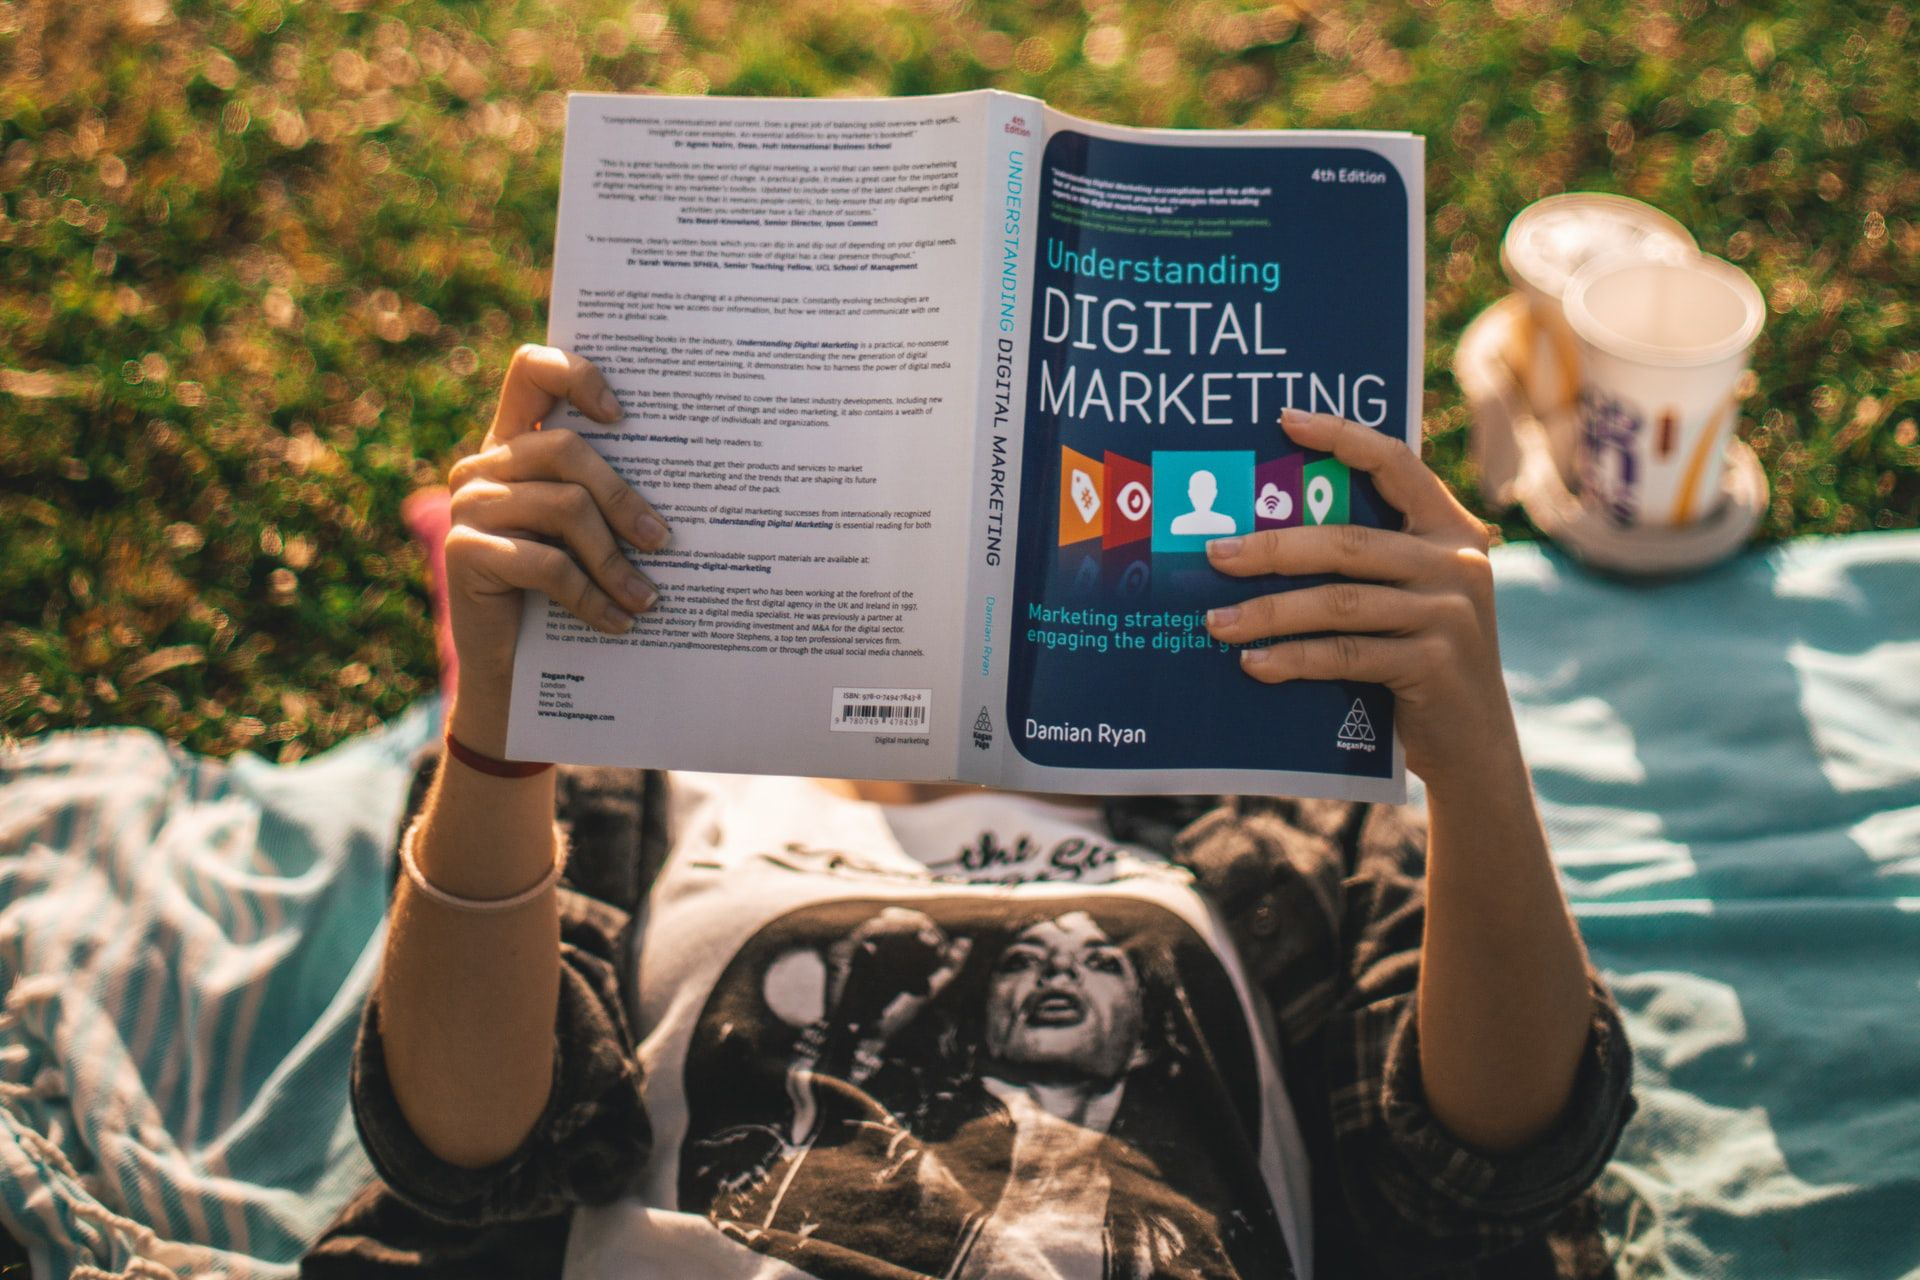 girl reading book about digital marketing